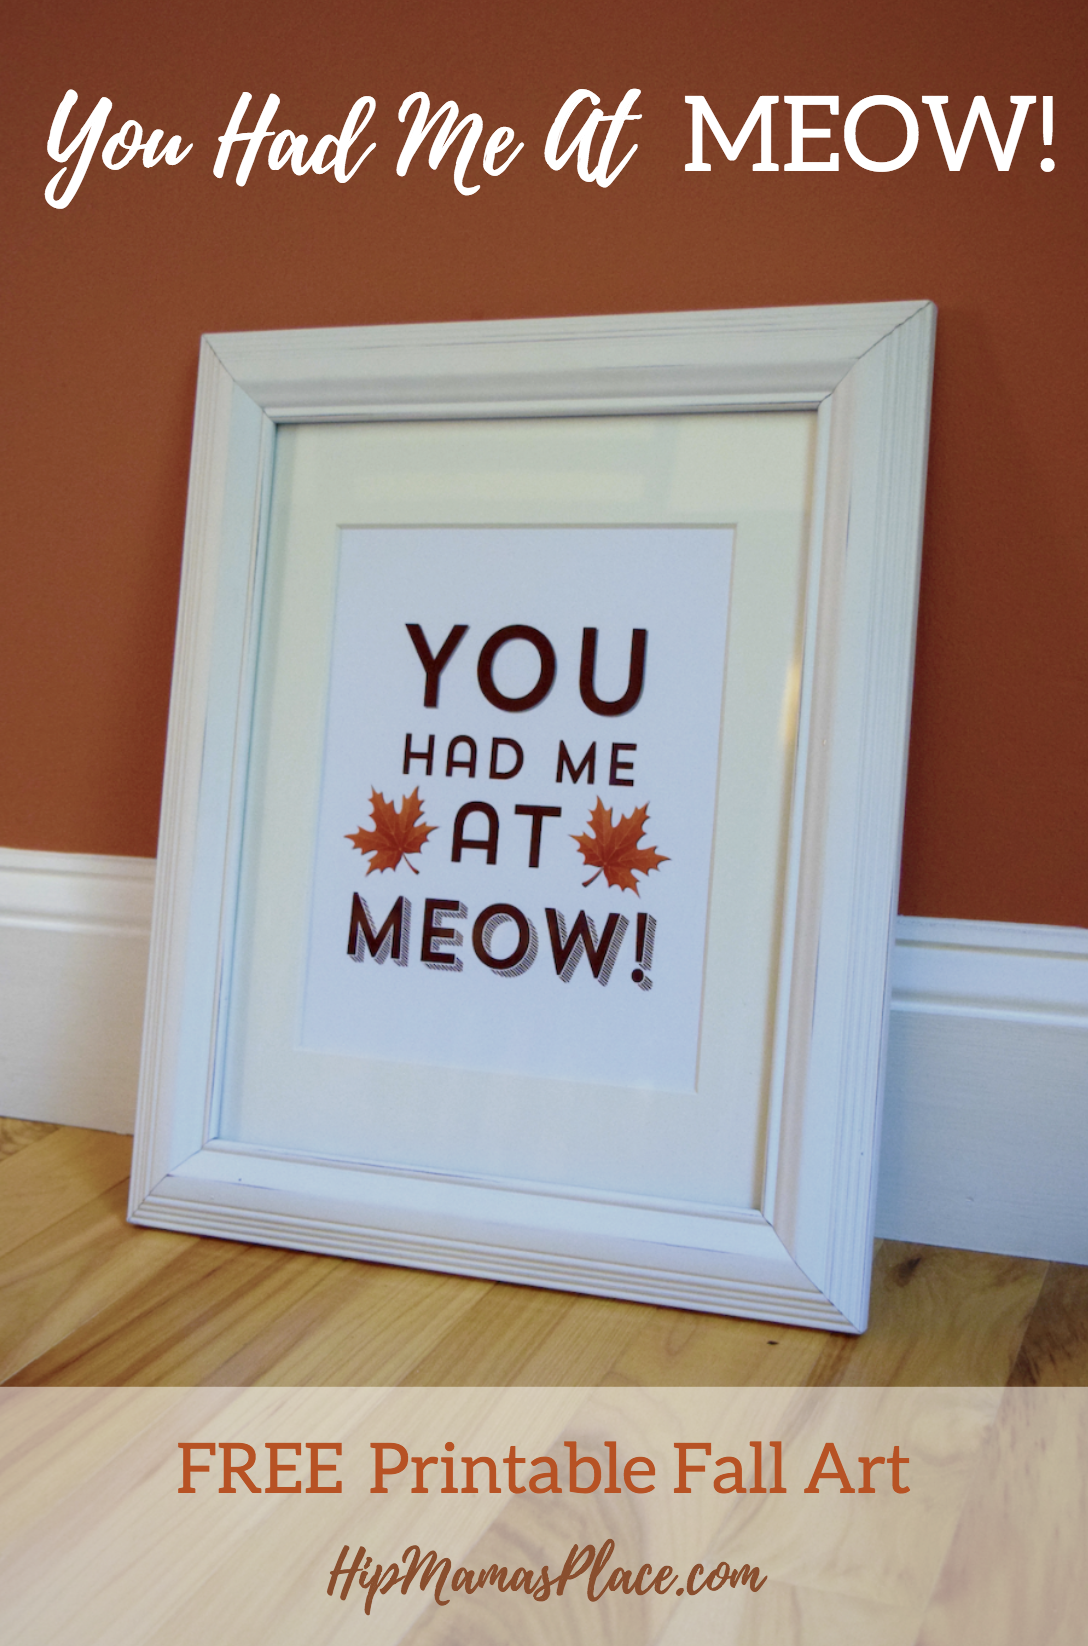 Get your FREE Printable Fall Art: